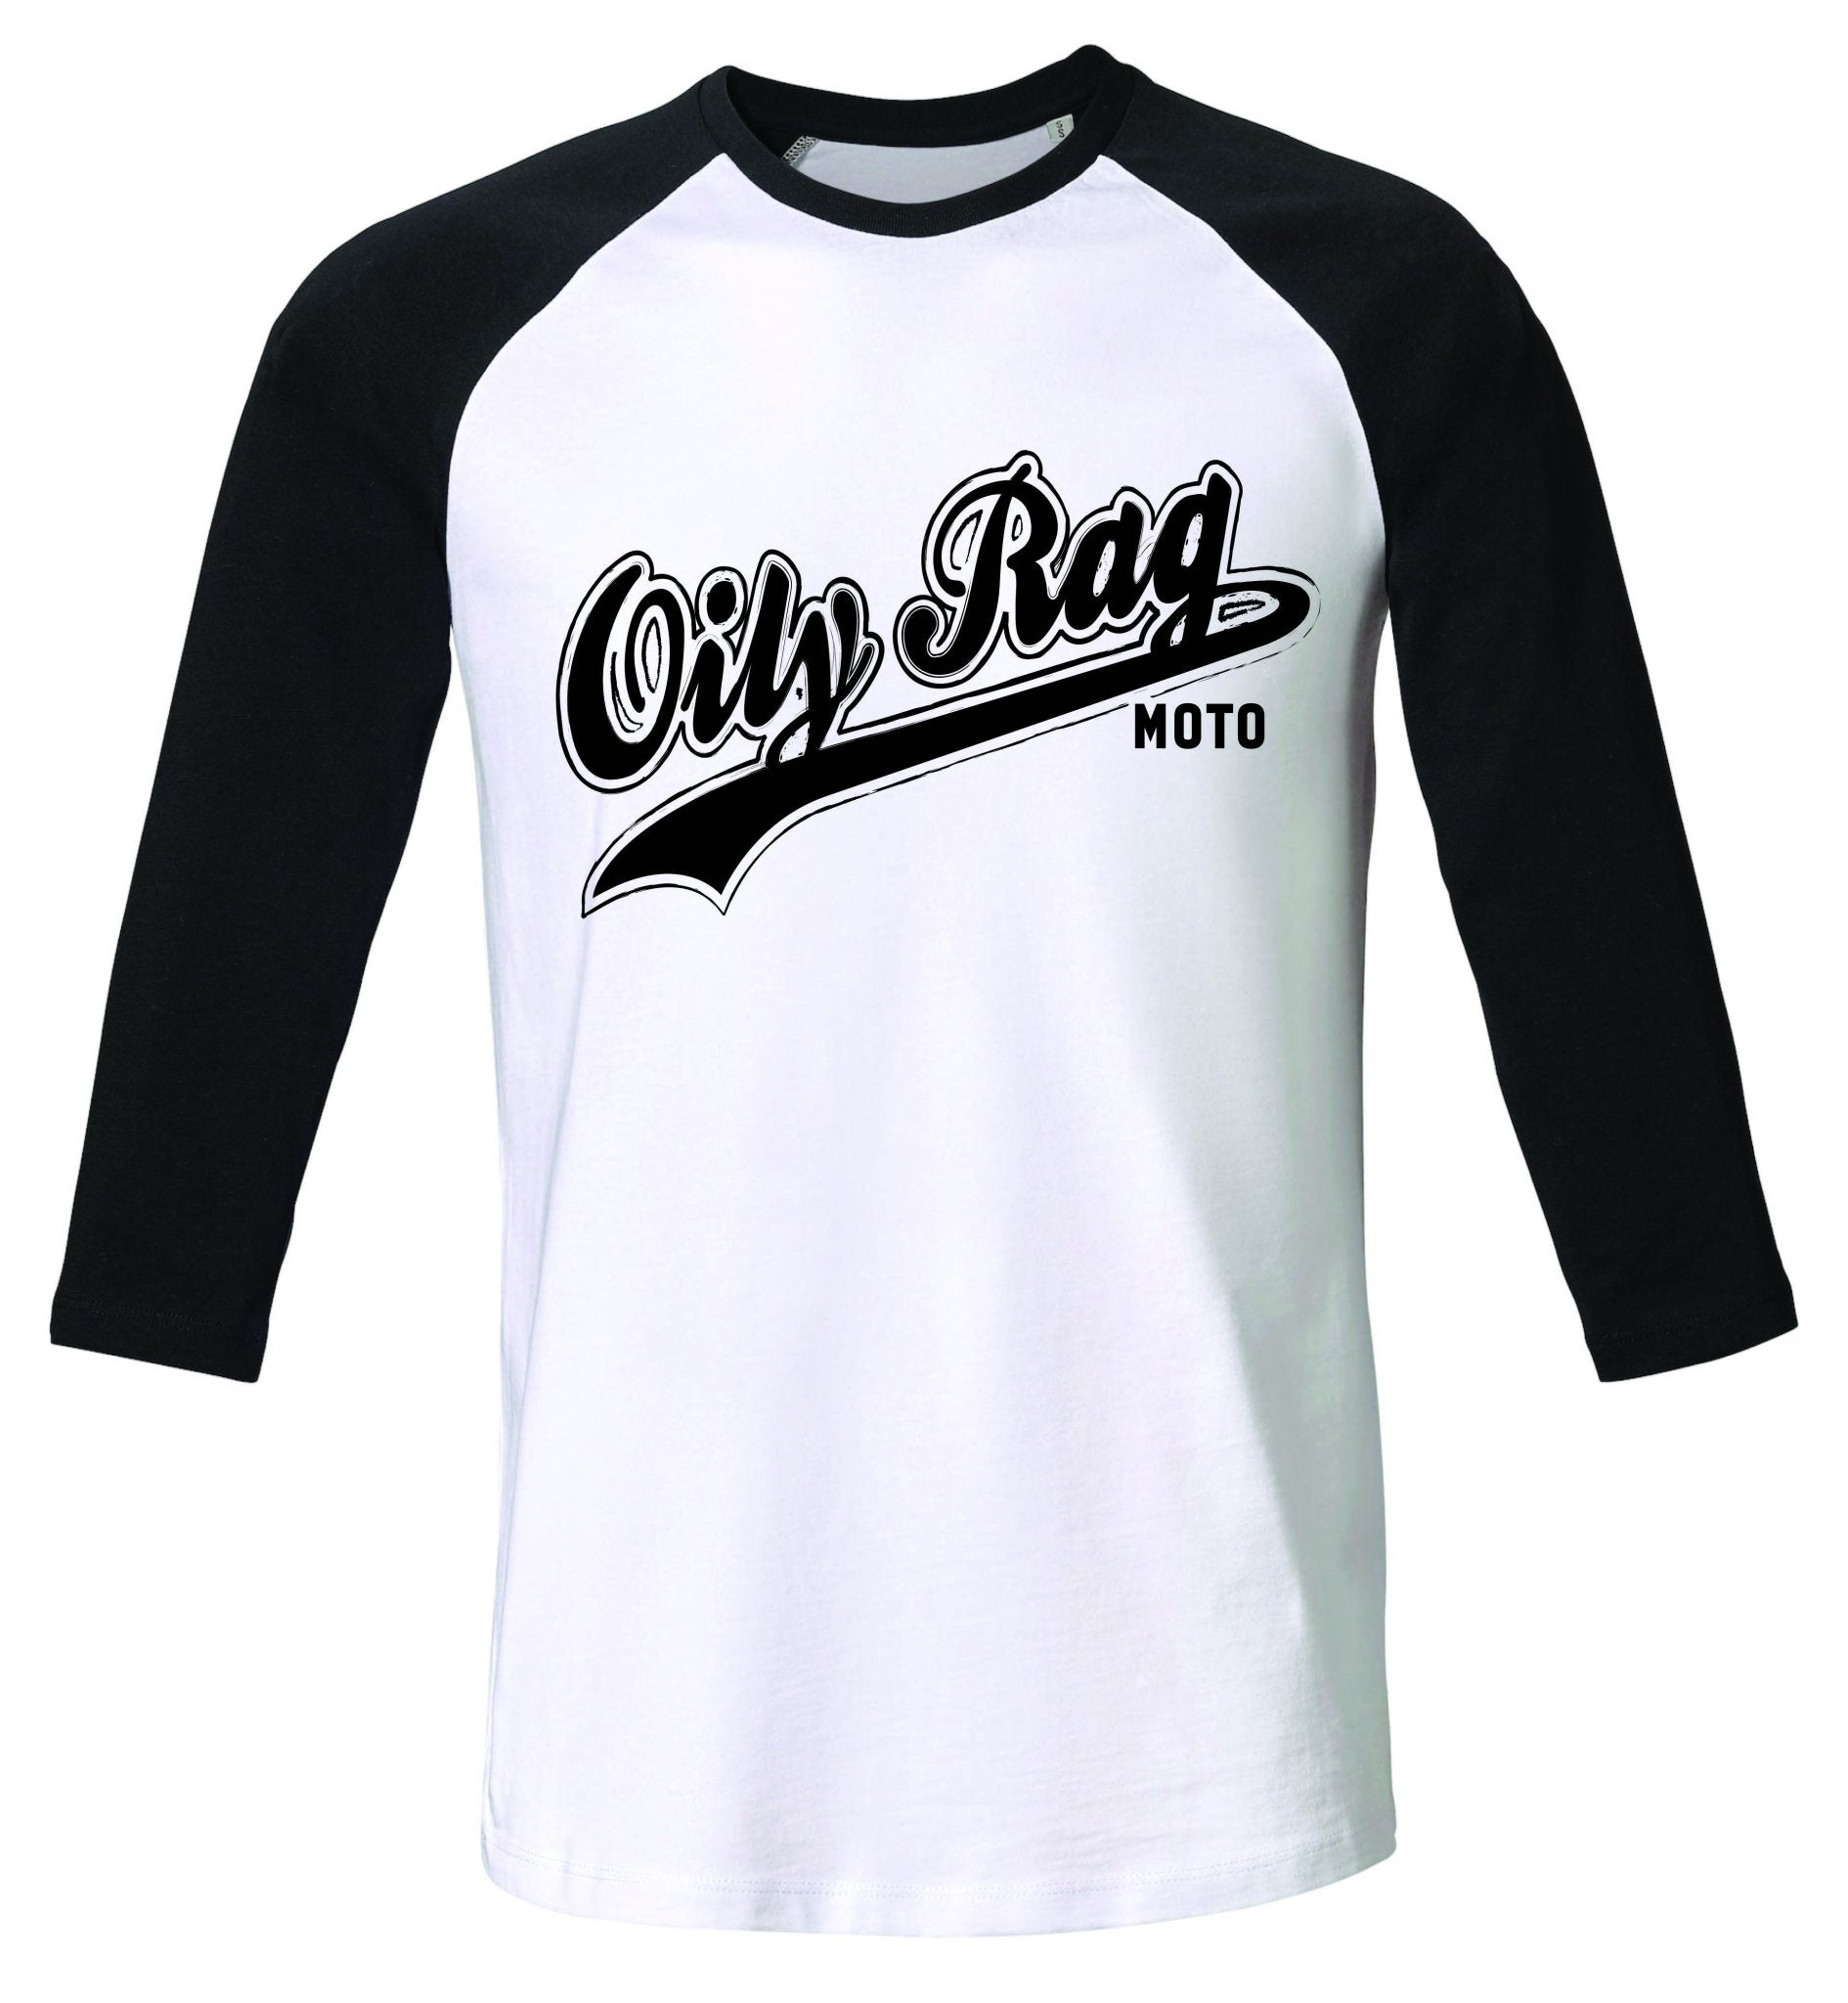 Oily Rag Clothing - Oily Rag Clothing Moto Raglan-3/4-Länge Ärmel T'Shirt - T-Shirts - Salt Flats Clothing